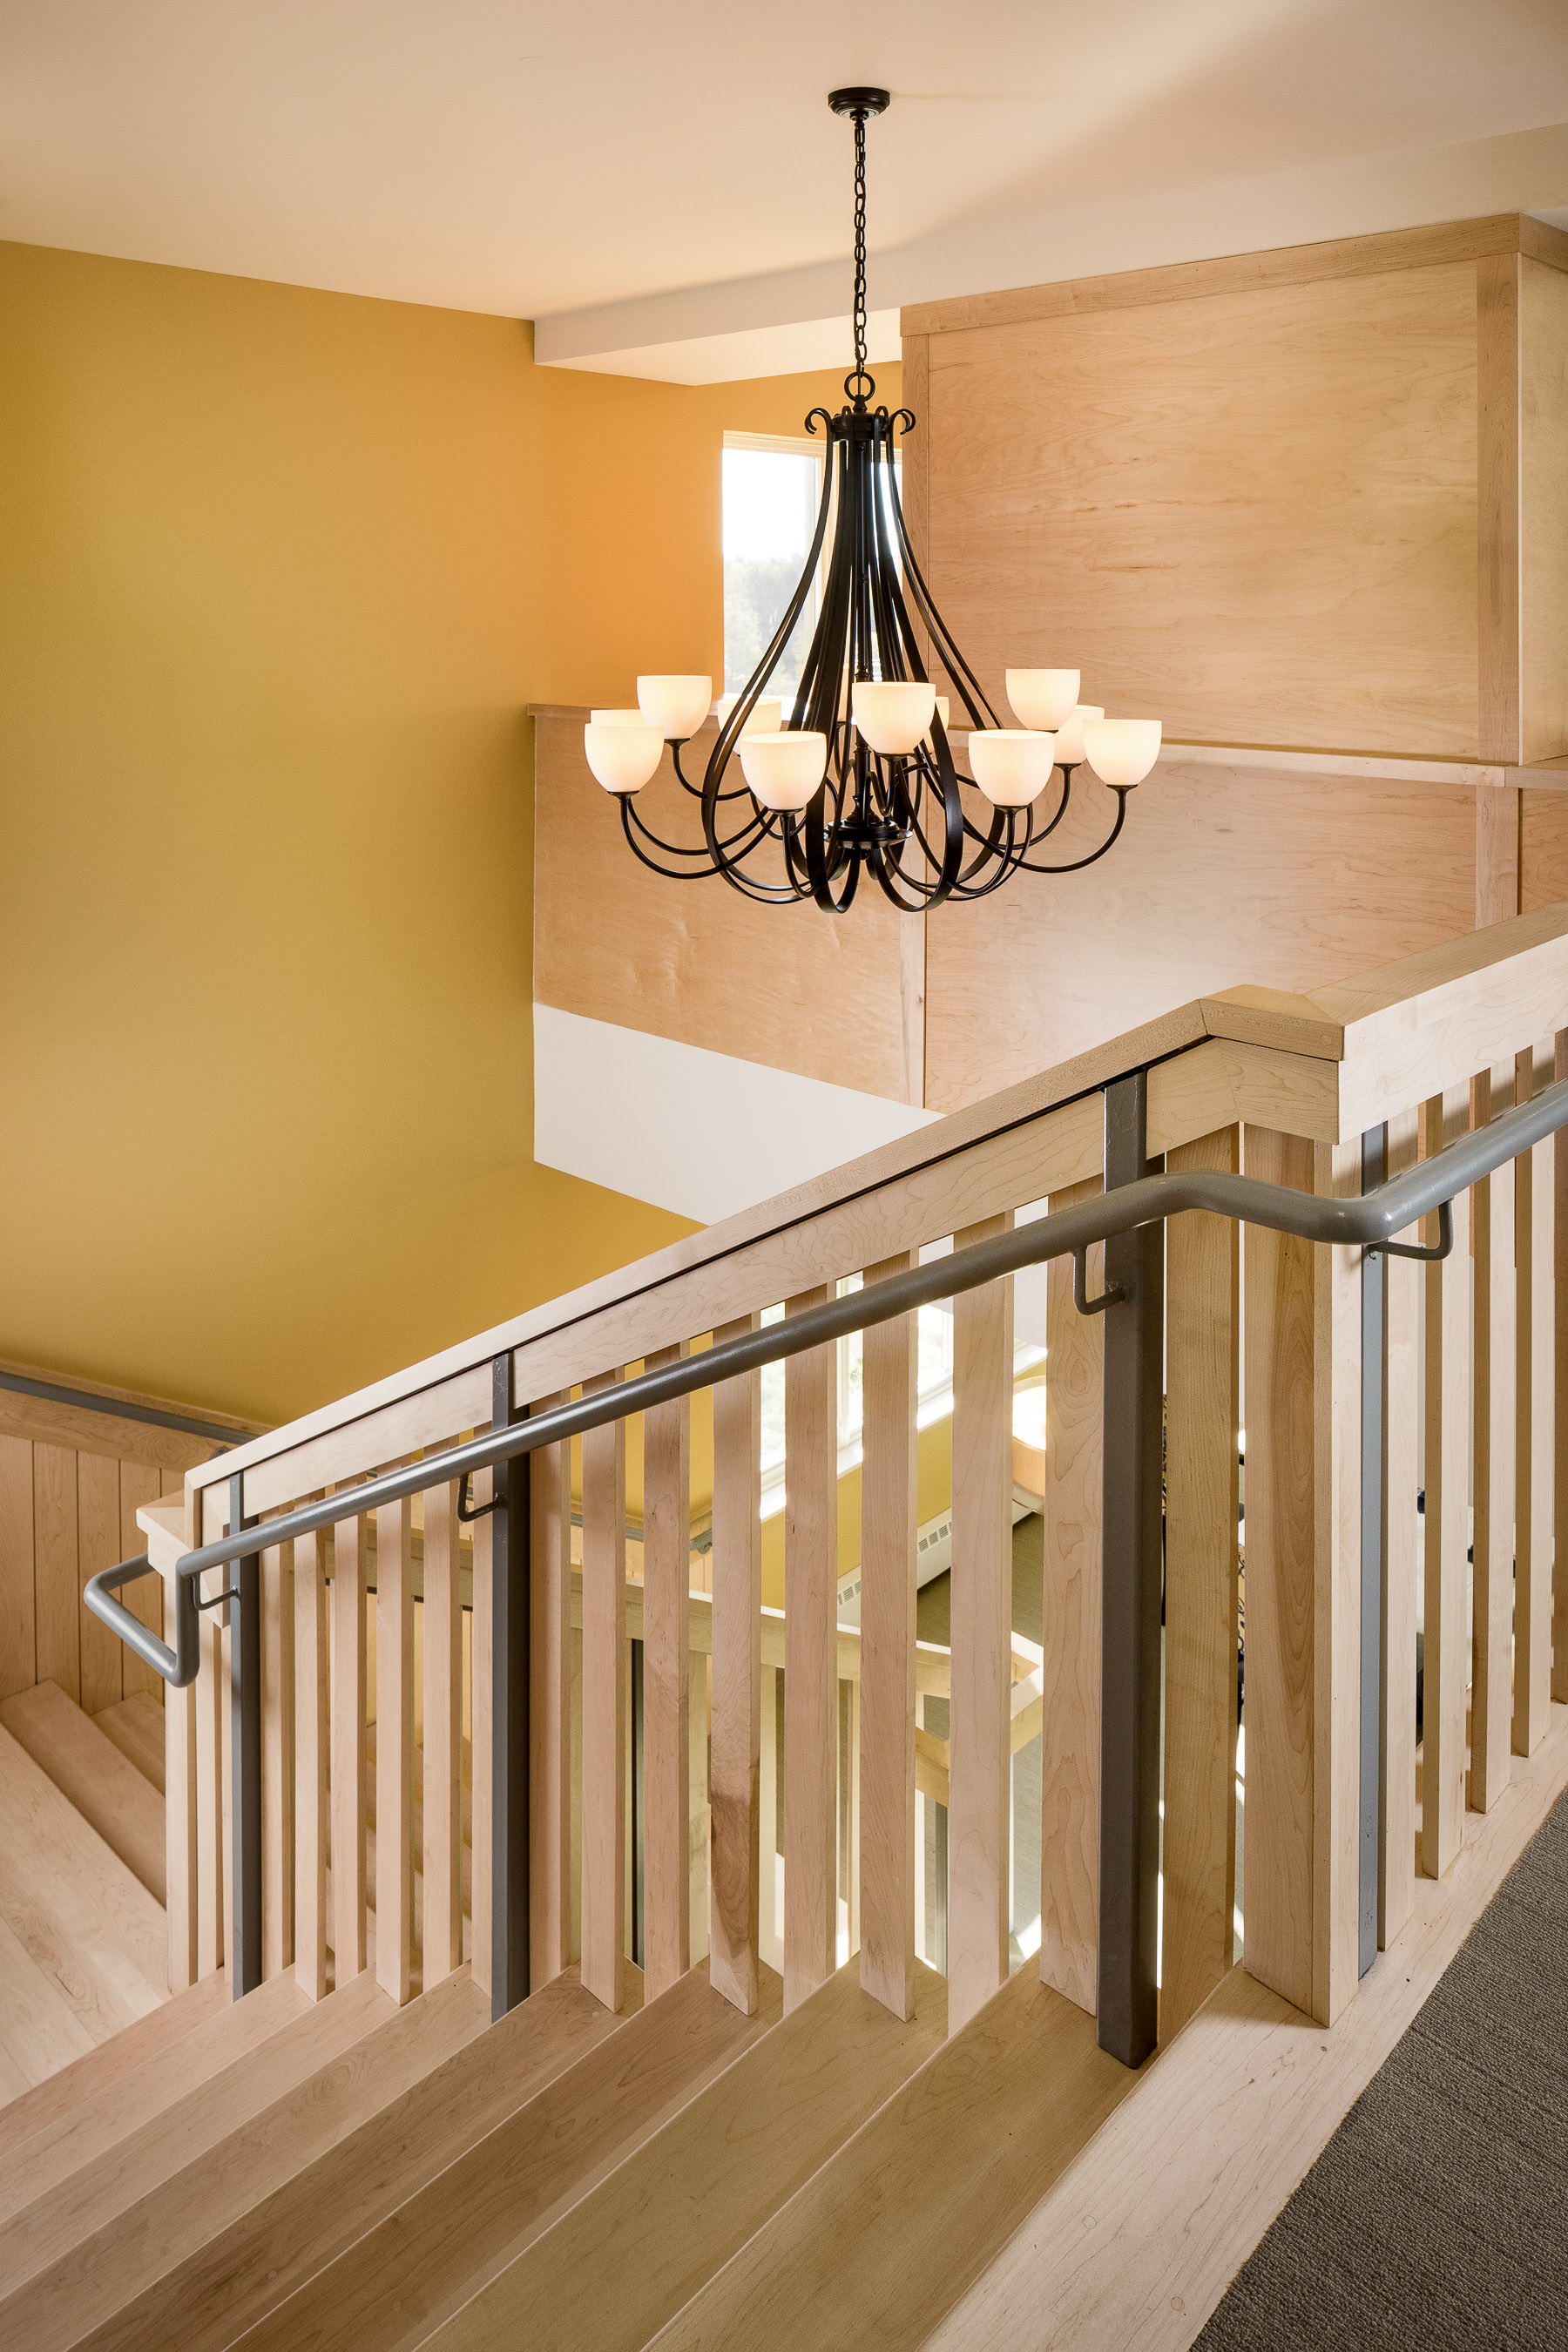 Architectural photo of the main floor stairwell in the Strode Independent Living Facility in Randolph by Vermont commercial photographer Stina Booth